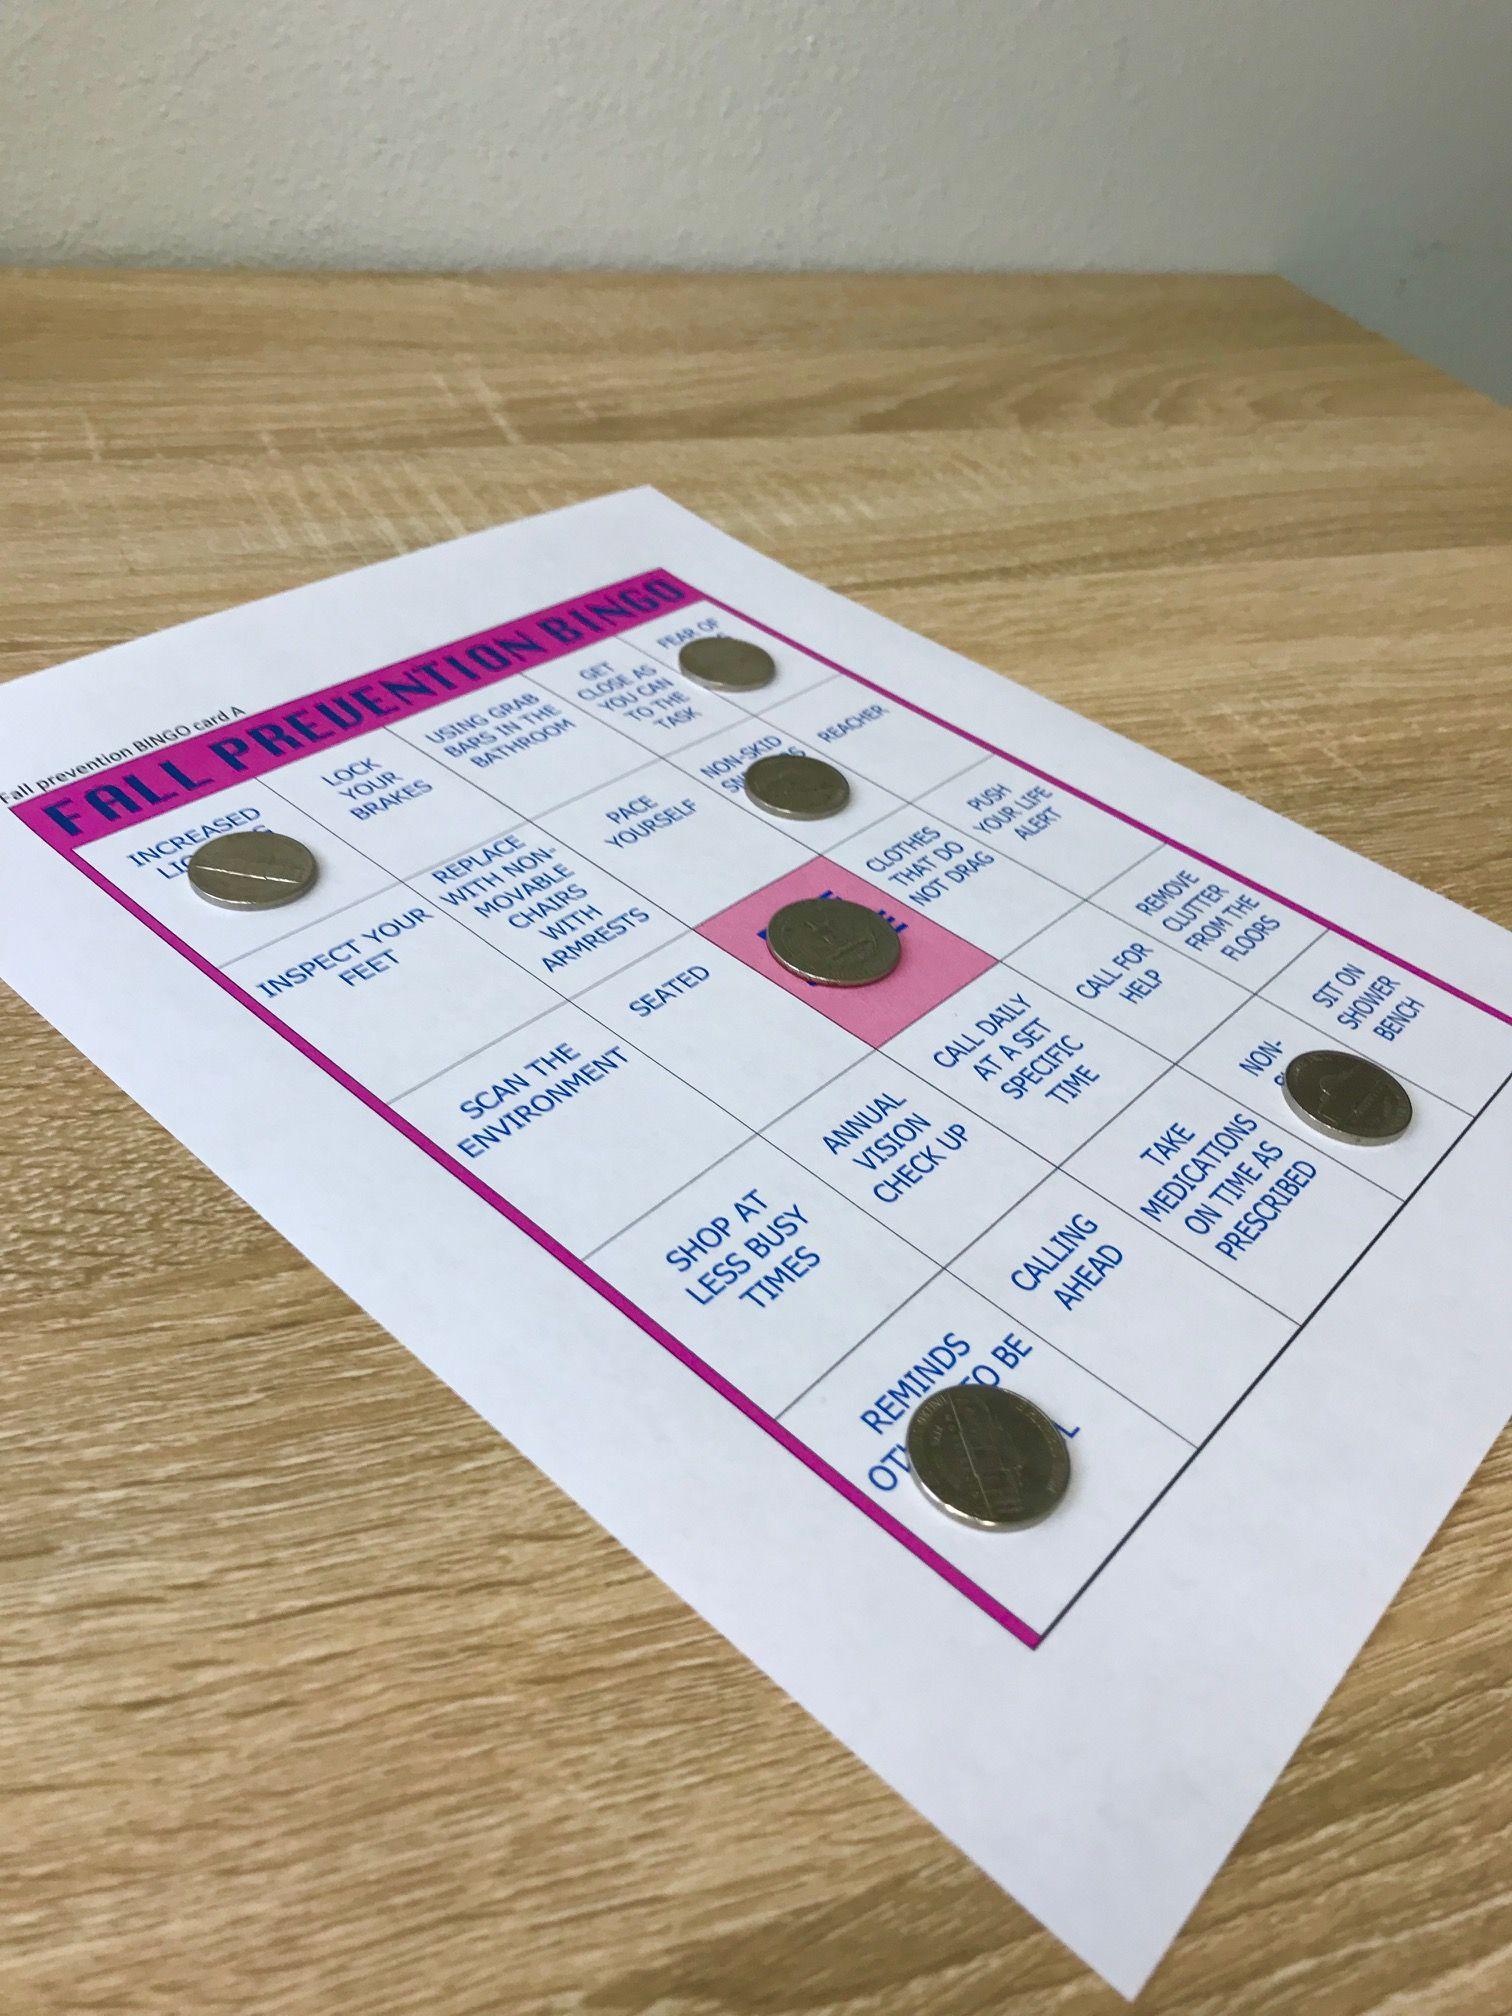 How To Make Your Own Fall Prevention Bingo Game